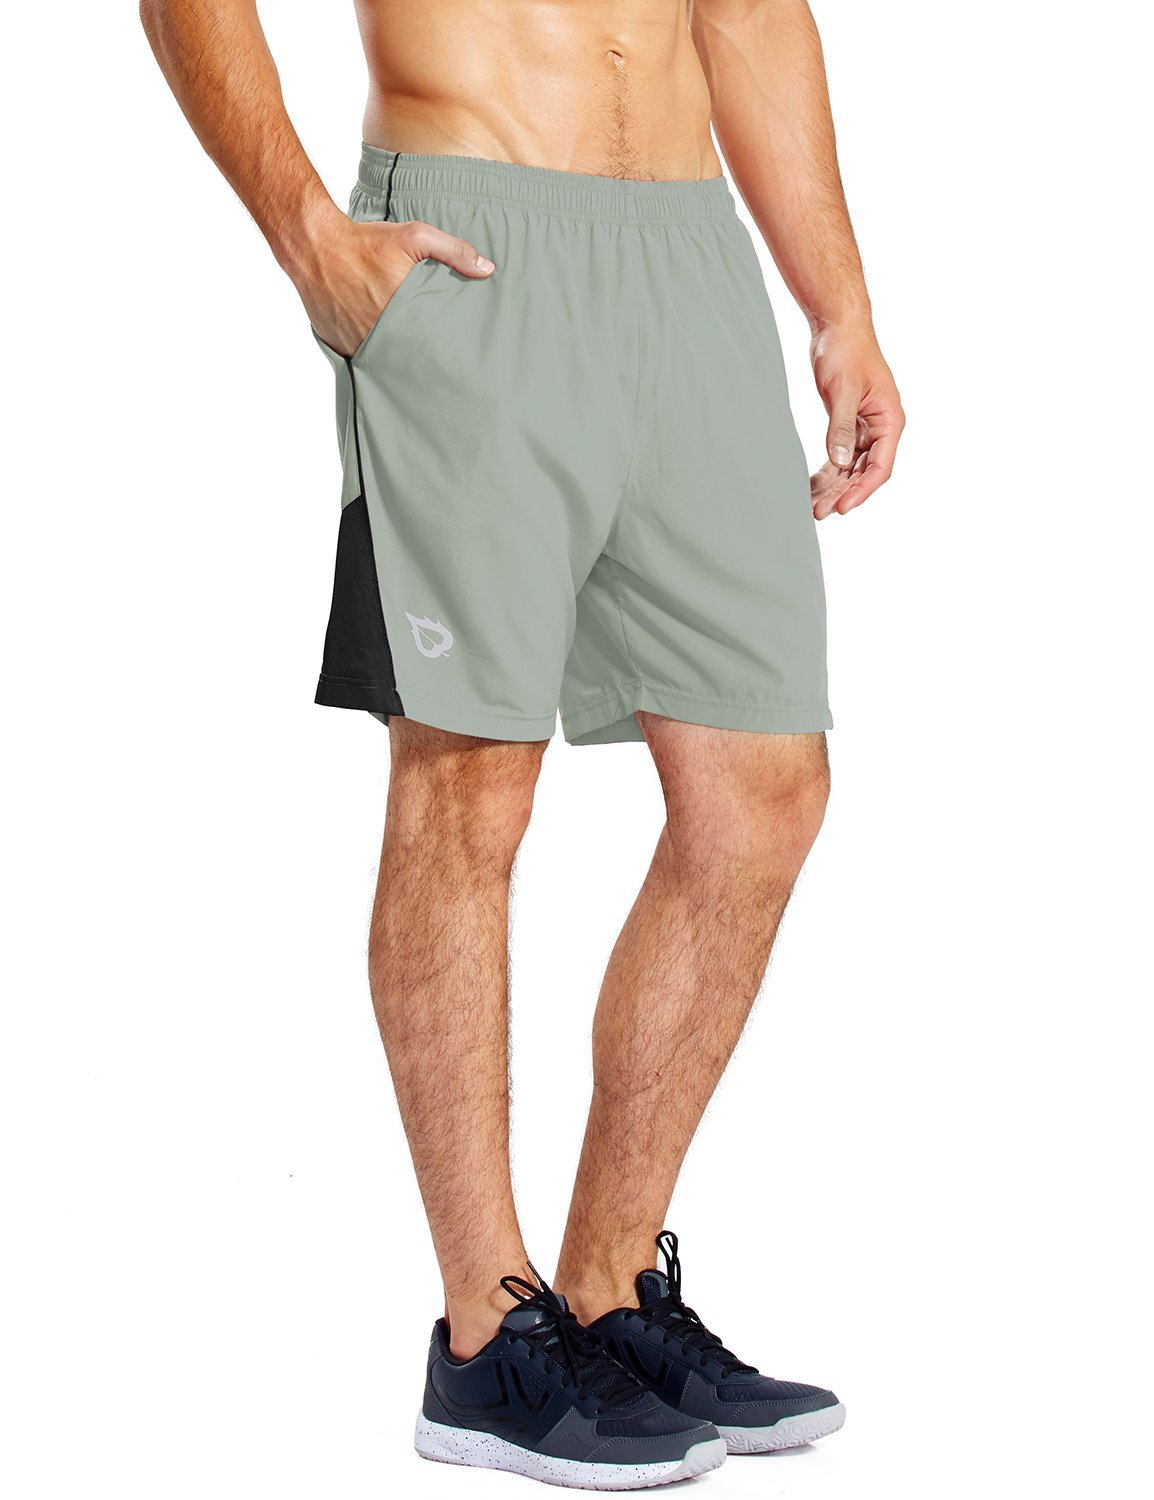 Baleaf Men's 7 Inches Quick Dry Workout Running Shorts Mesh Liner Zip Pockets Light-Grey Size S